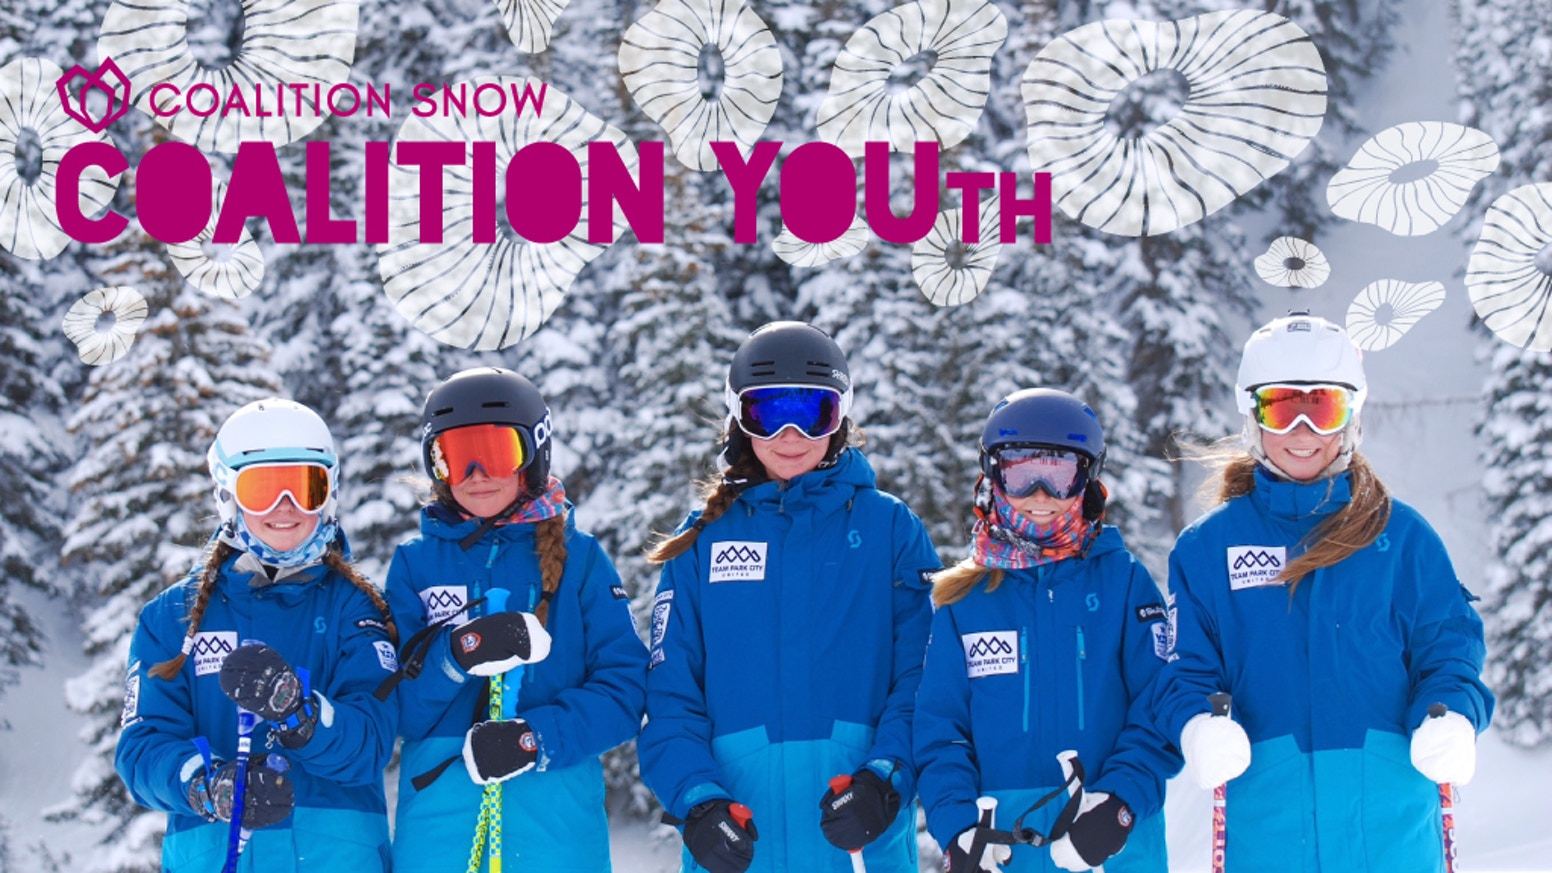 Coalition Snow YOUth Skis and Snowboards (LI)